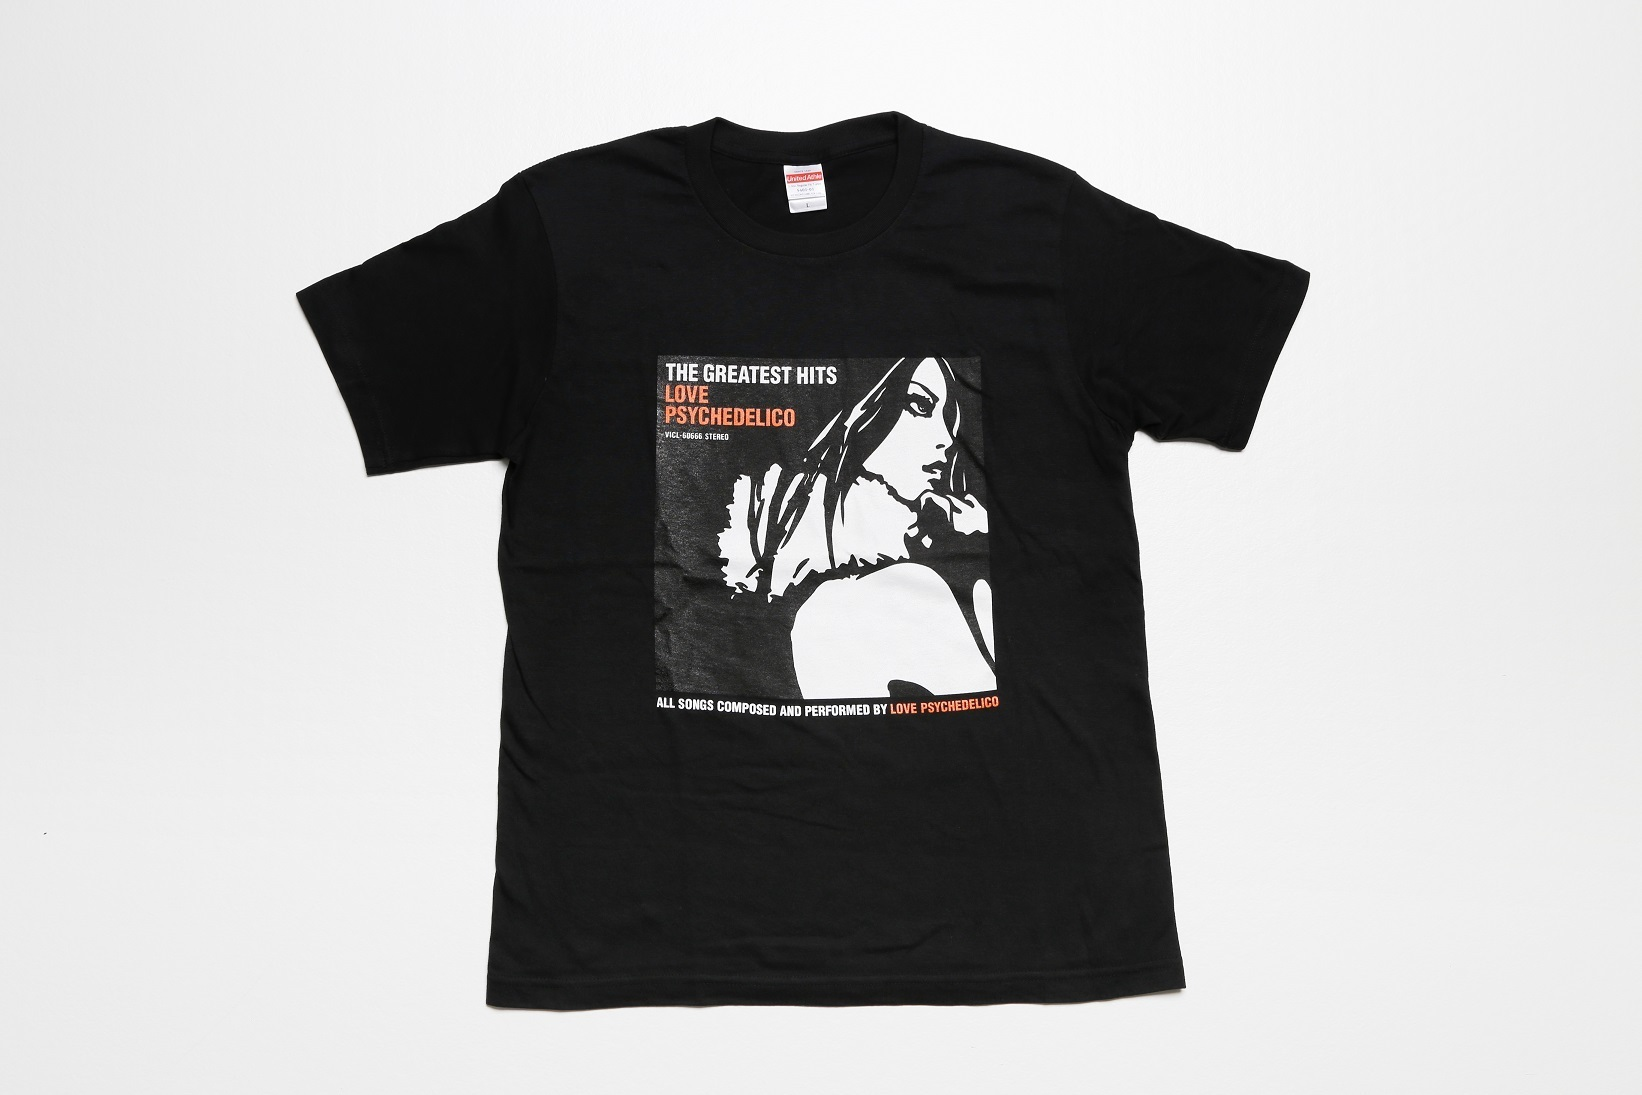 LIVE THE GREATEST HITS 2020 Tシャツ・JACKET Ver.